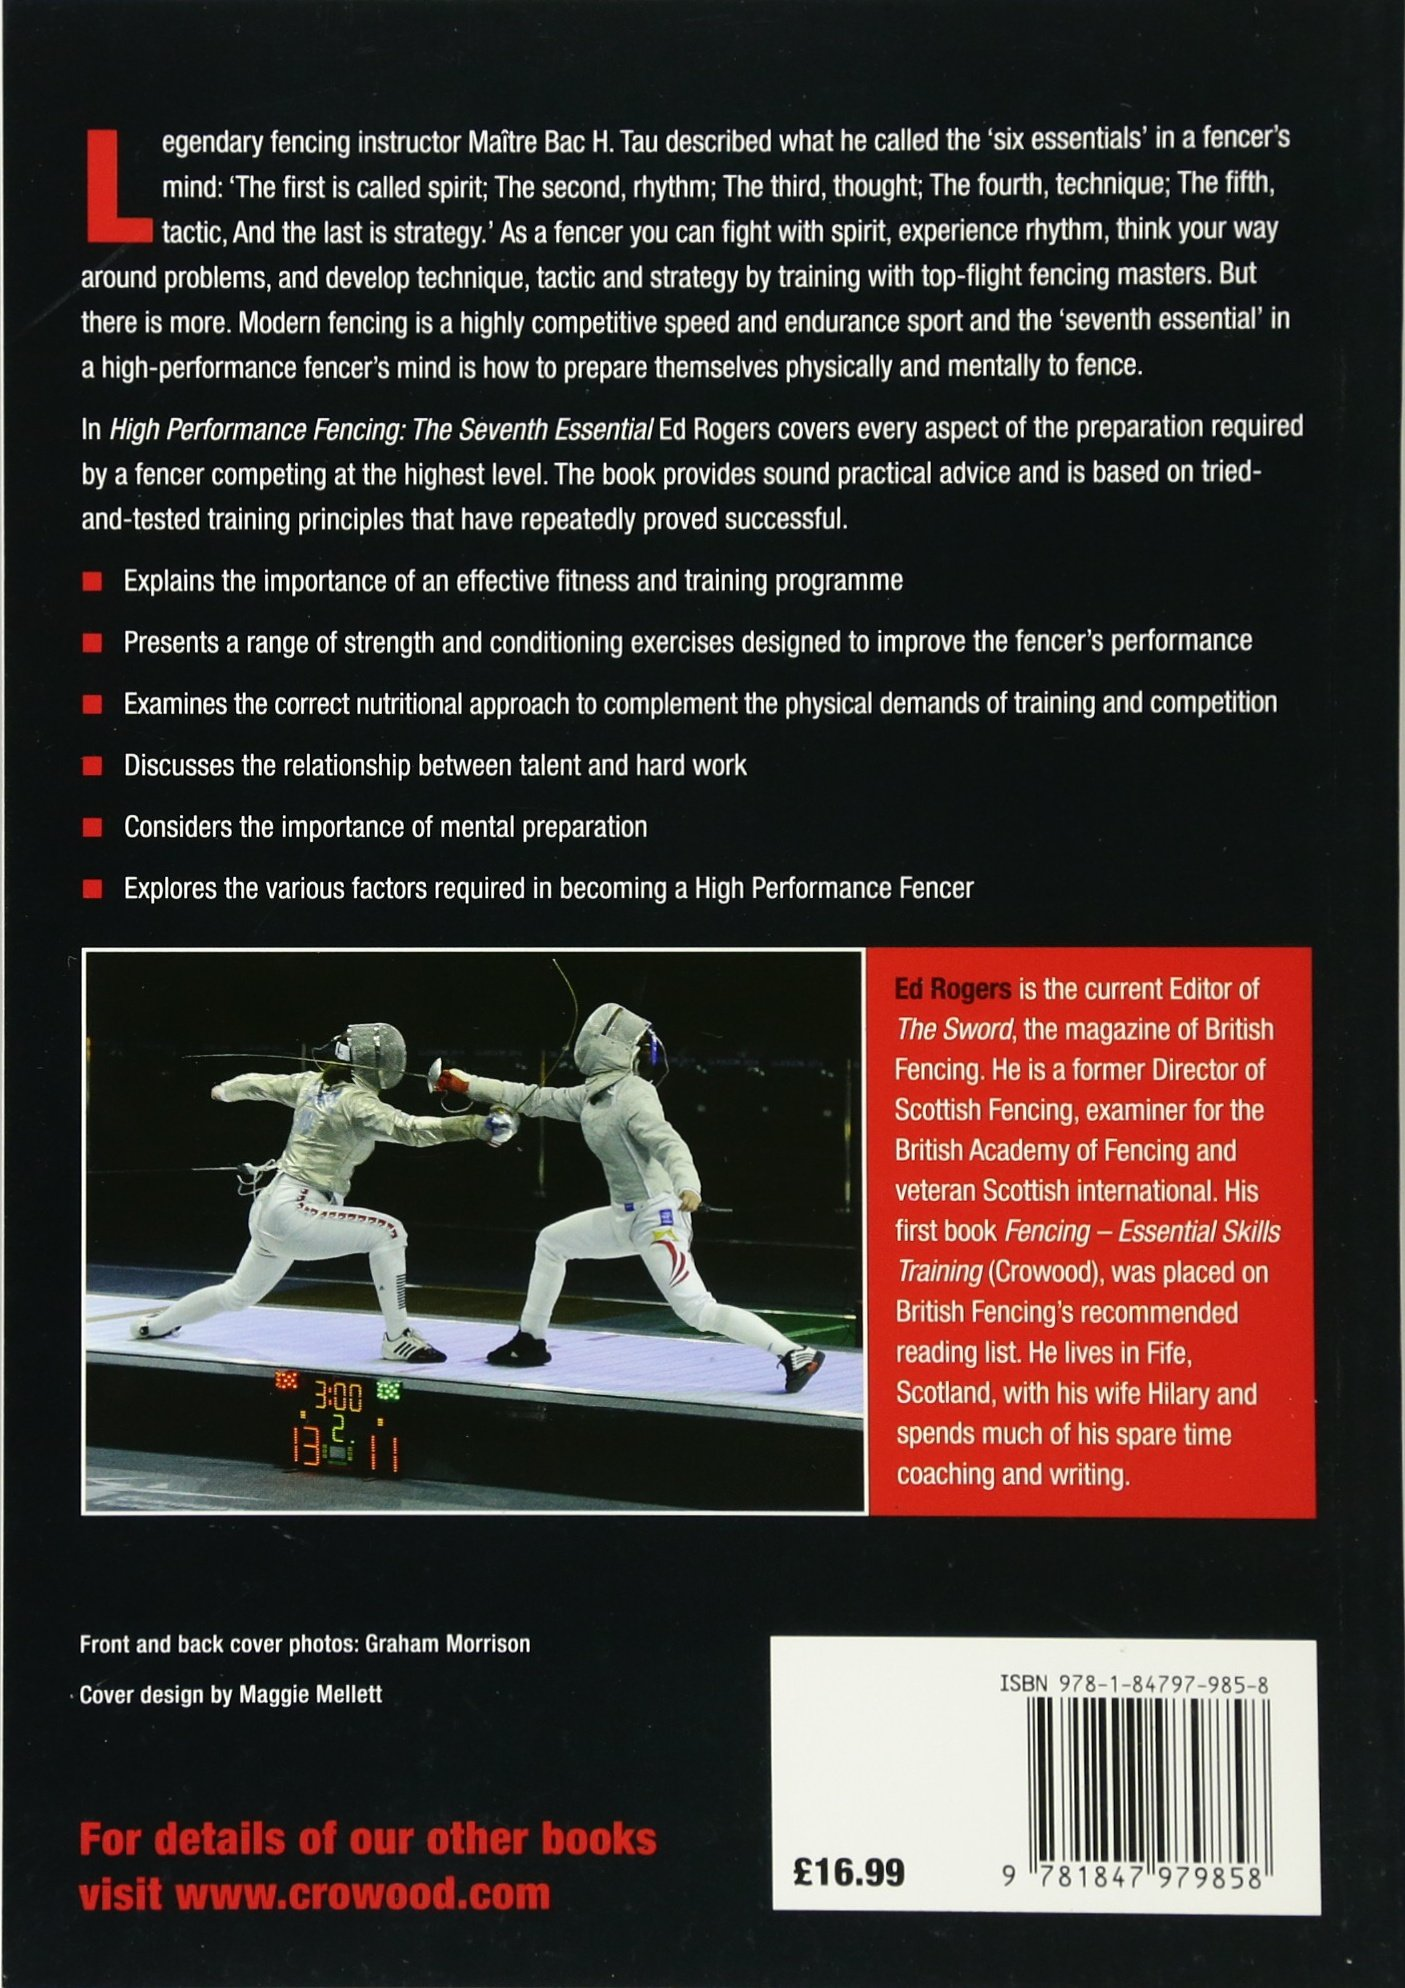 high performance fencing the seventh essential ed rogers